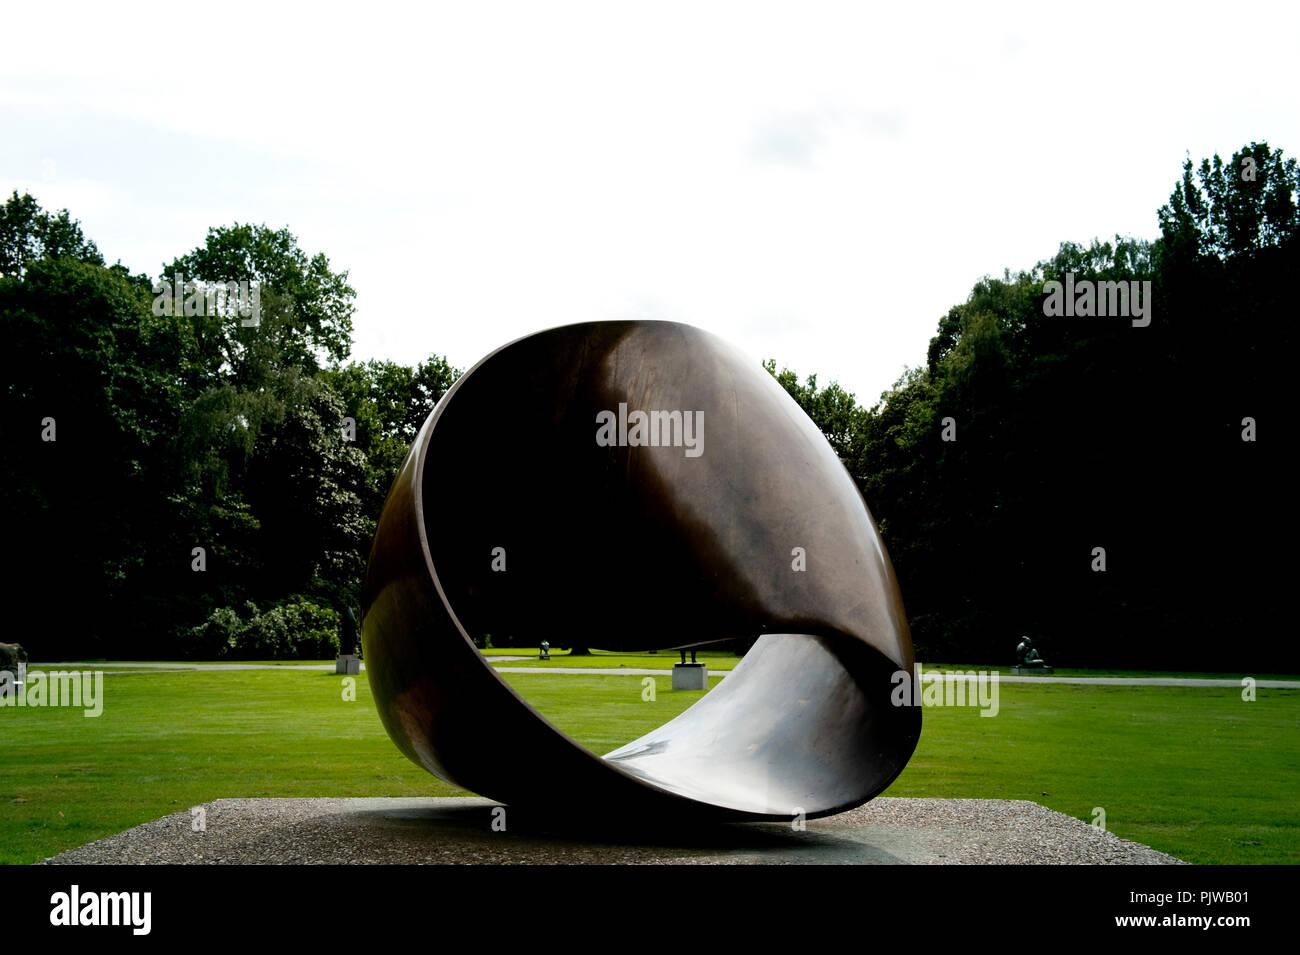 The Middelheim Museum In Antwerp An Open Air Museum Of Modern And Contemporary Sculptures Belgium 04 09 2008 Stock Photo Alamy